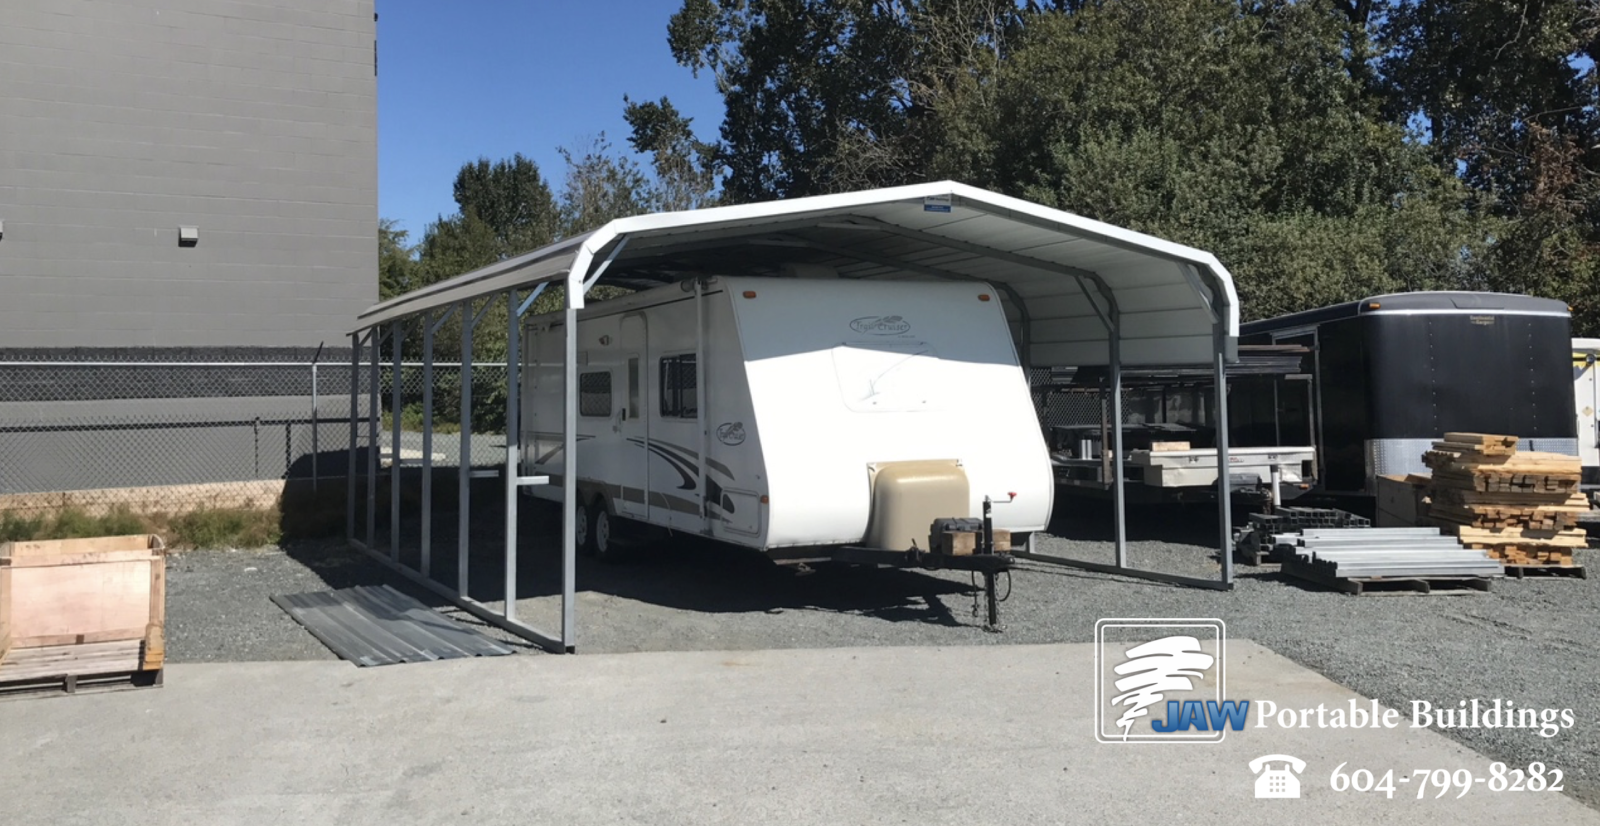 Portable RV Shelter - JAW Portable Buildings